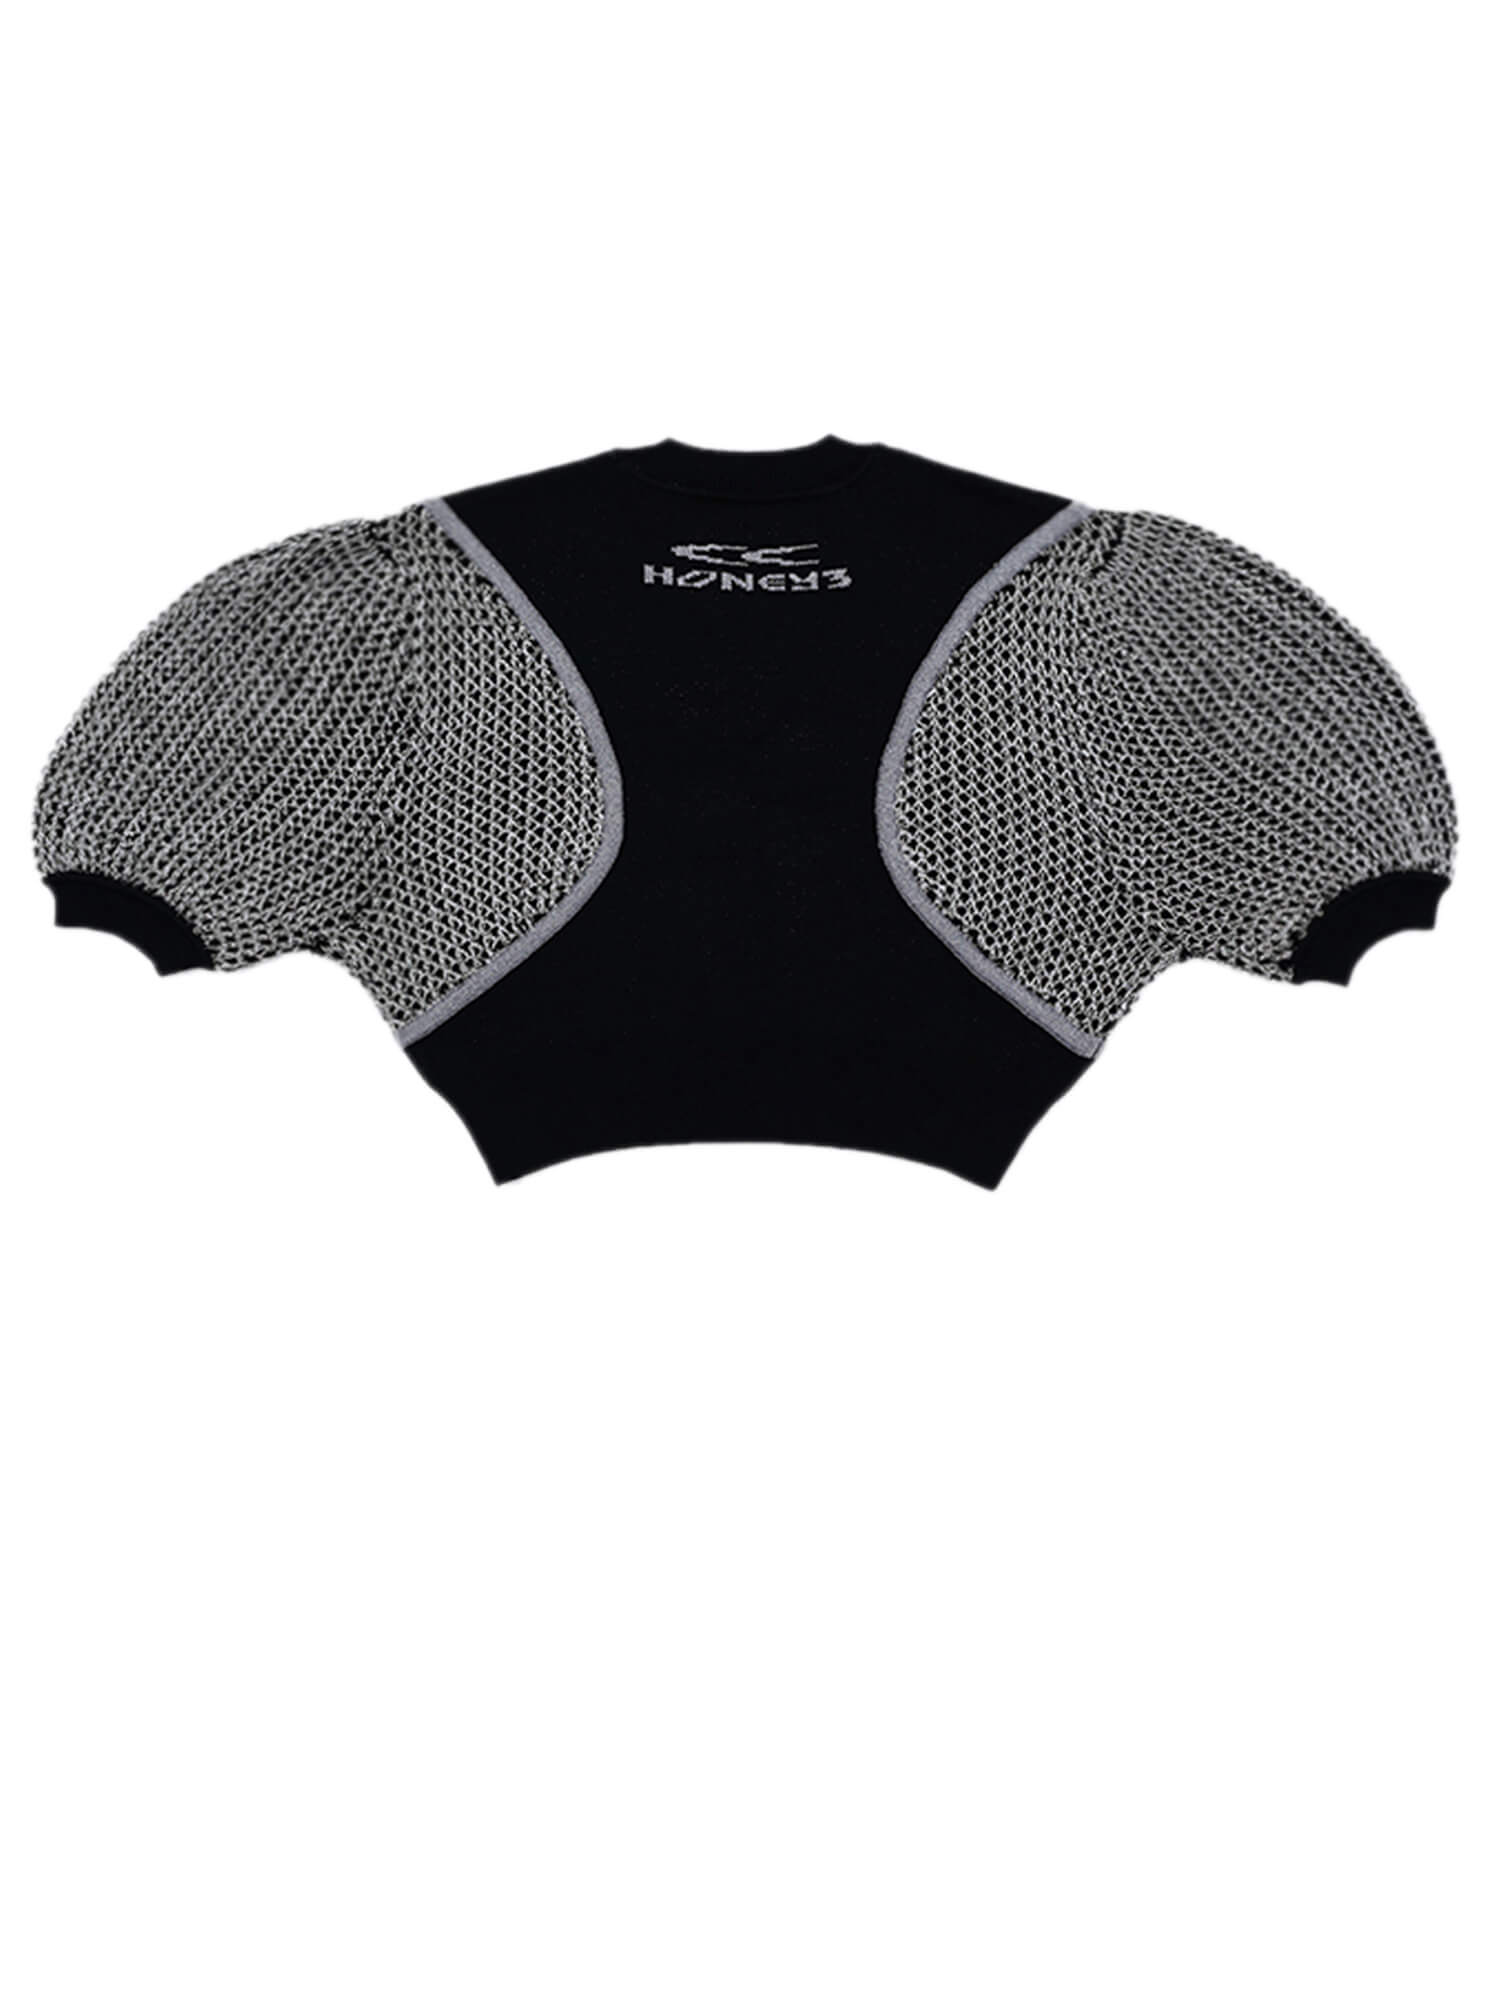 CARRY A CD PLAYER WHEREVER YOU GO SHORT SLEEVE KNIT TOP